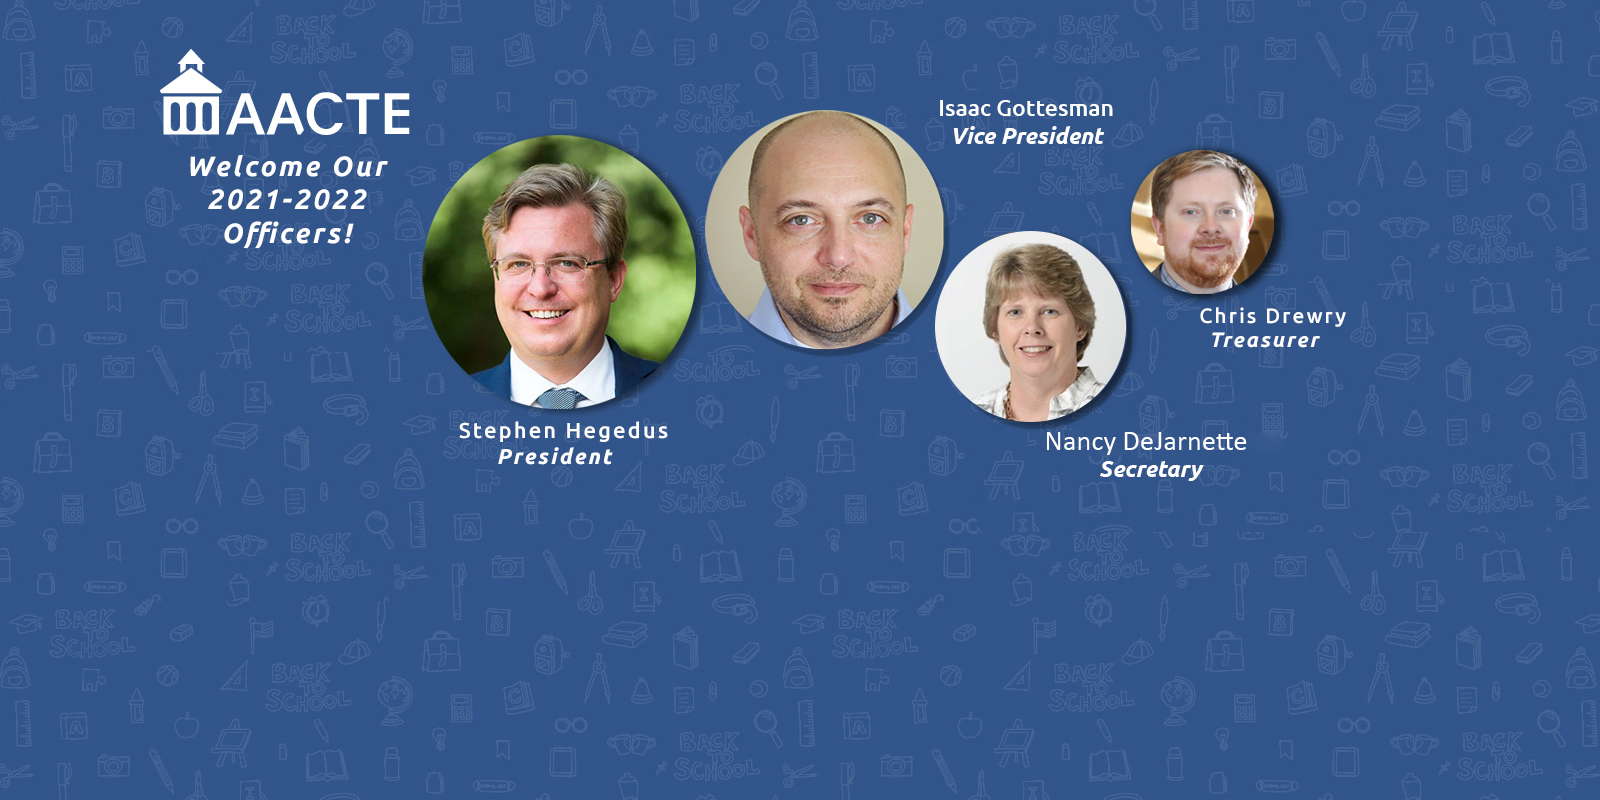 AACTE-CT Welcomes Our New Officers